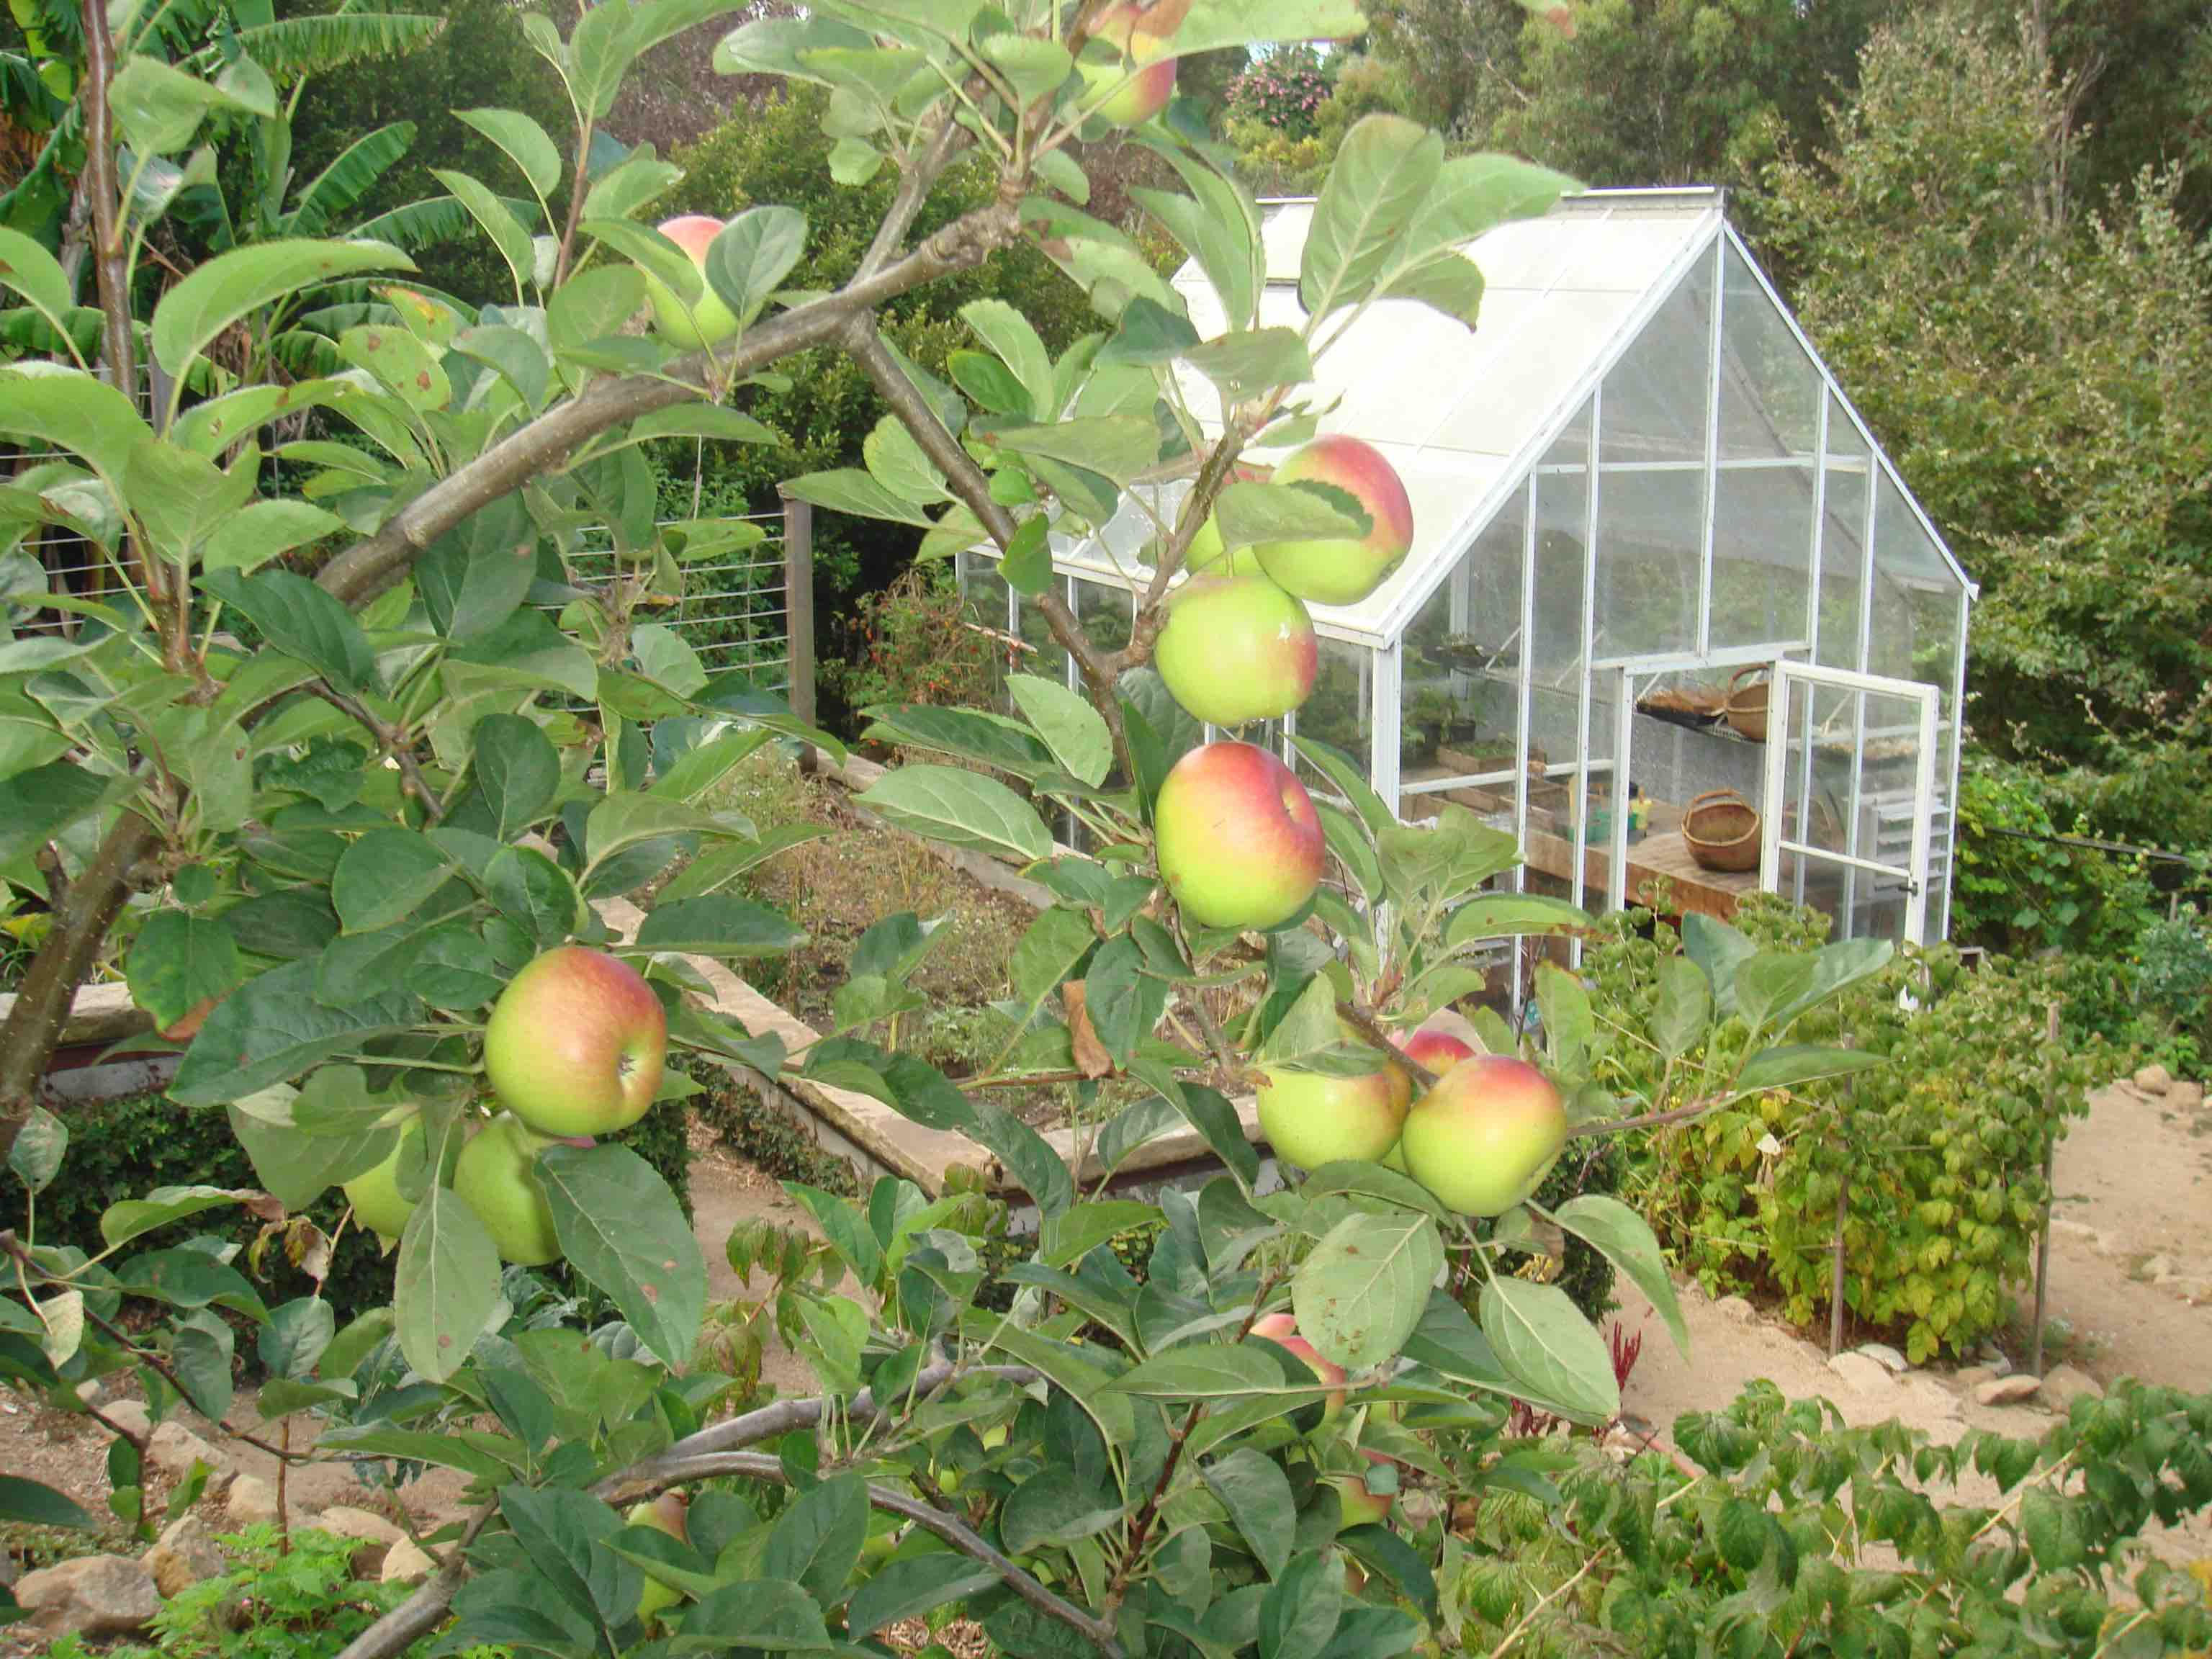 Fossil Fuel Pollution - Apple Trees